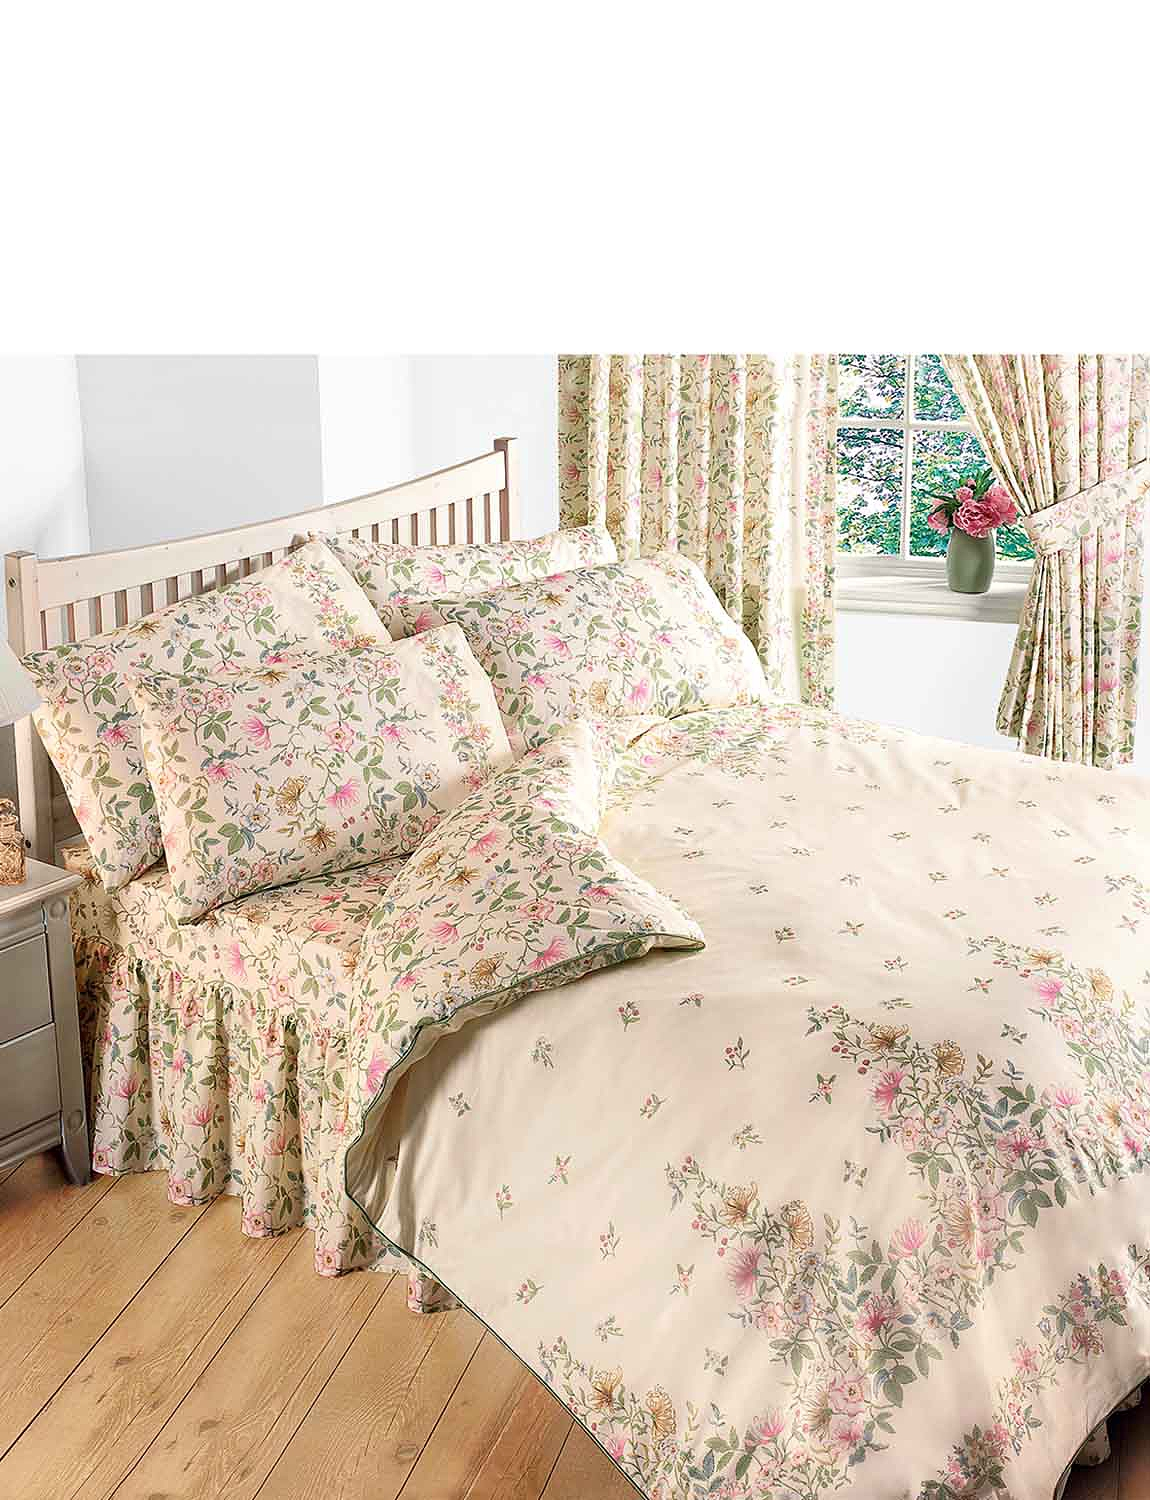 Cottage Garden Duvet Amp Curtains By Vantona Chums